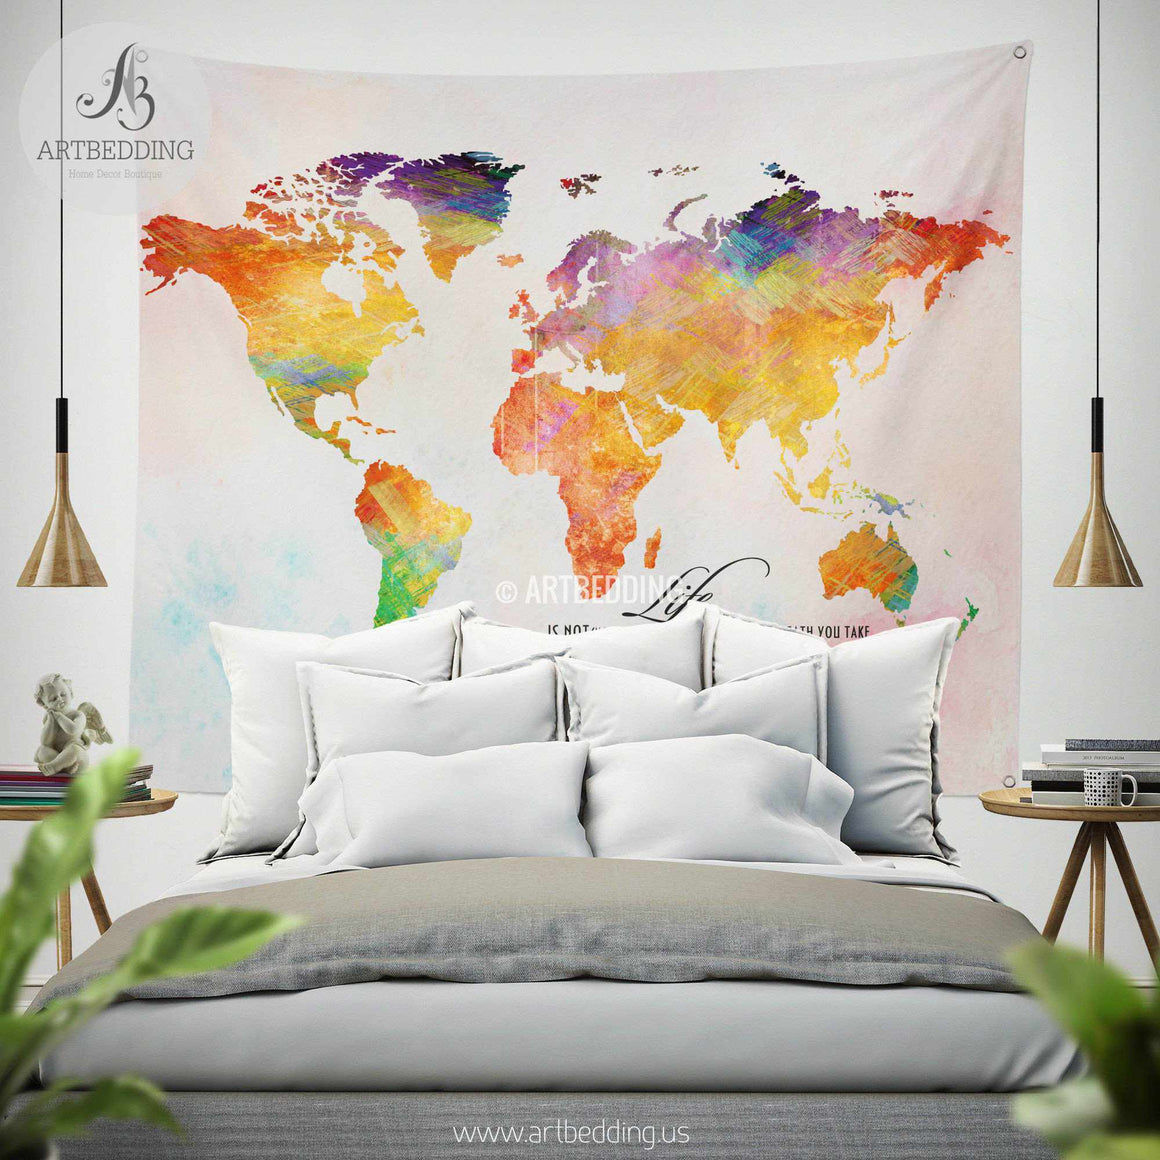 Wall murals wall tapestries canvas wall art wall decor tagged boho tapestry urban graffiti wall tapestry inspirational quote wall decor hippie tapestry wall amipublicfo Choice Image